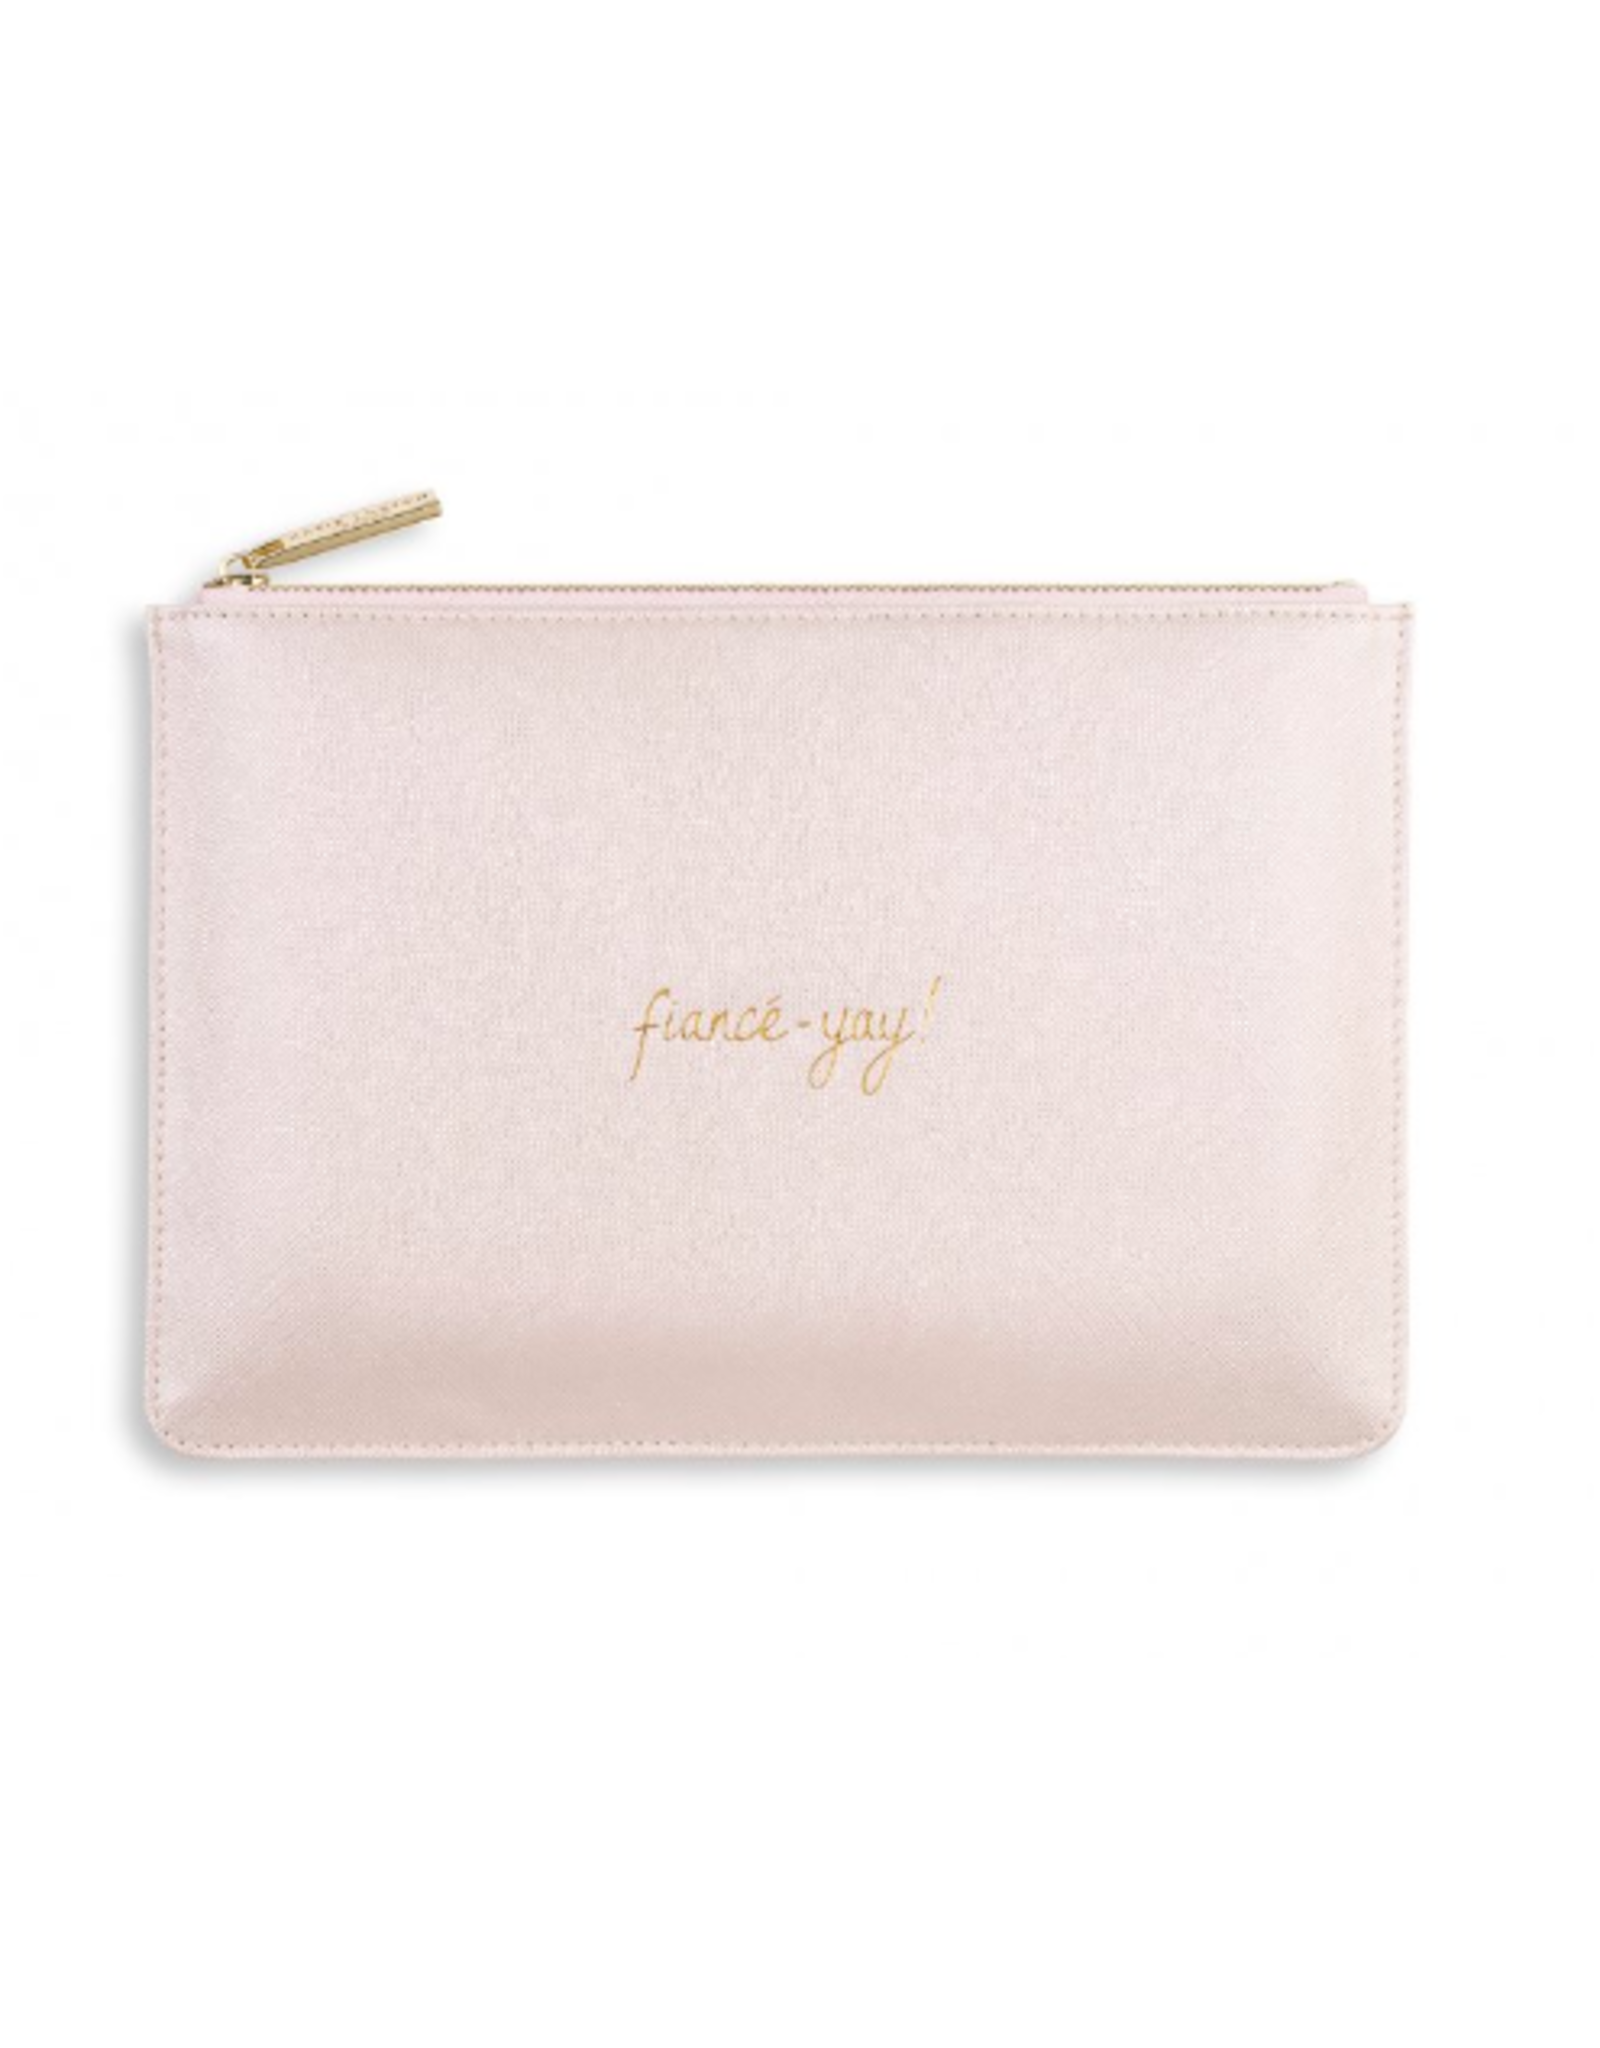 Katie Loxton Fiance-Yay Perfect Pouch in Metallic White